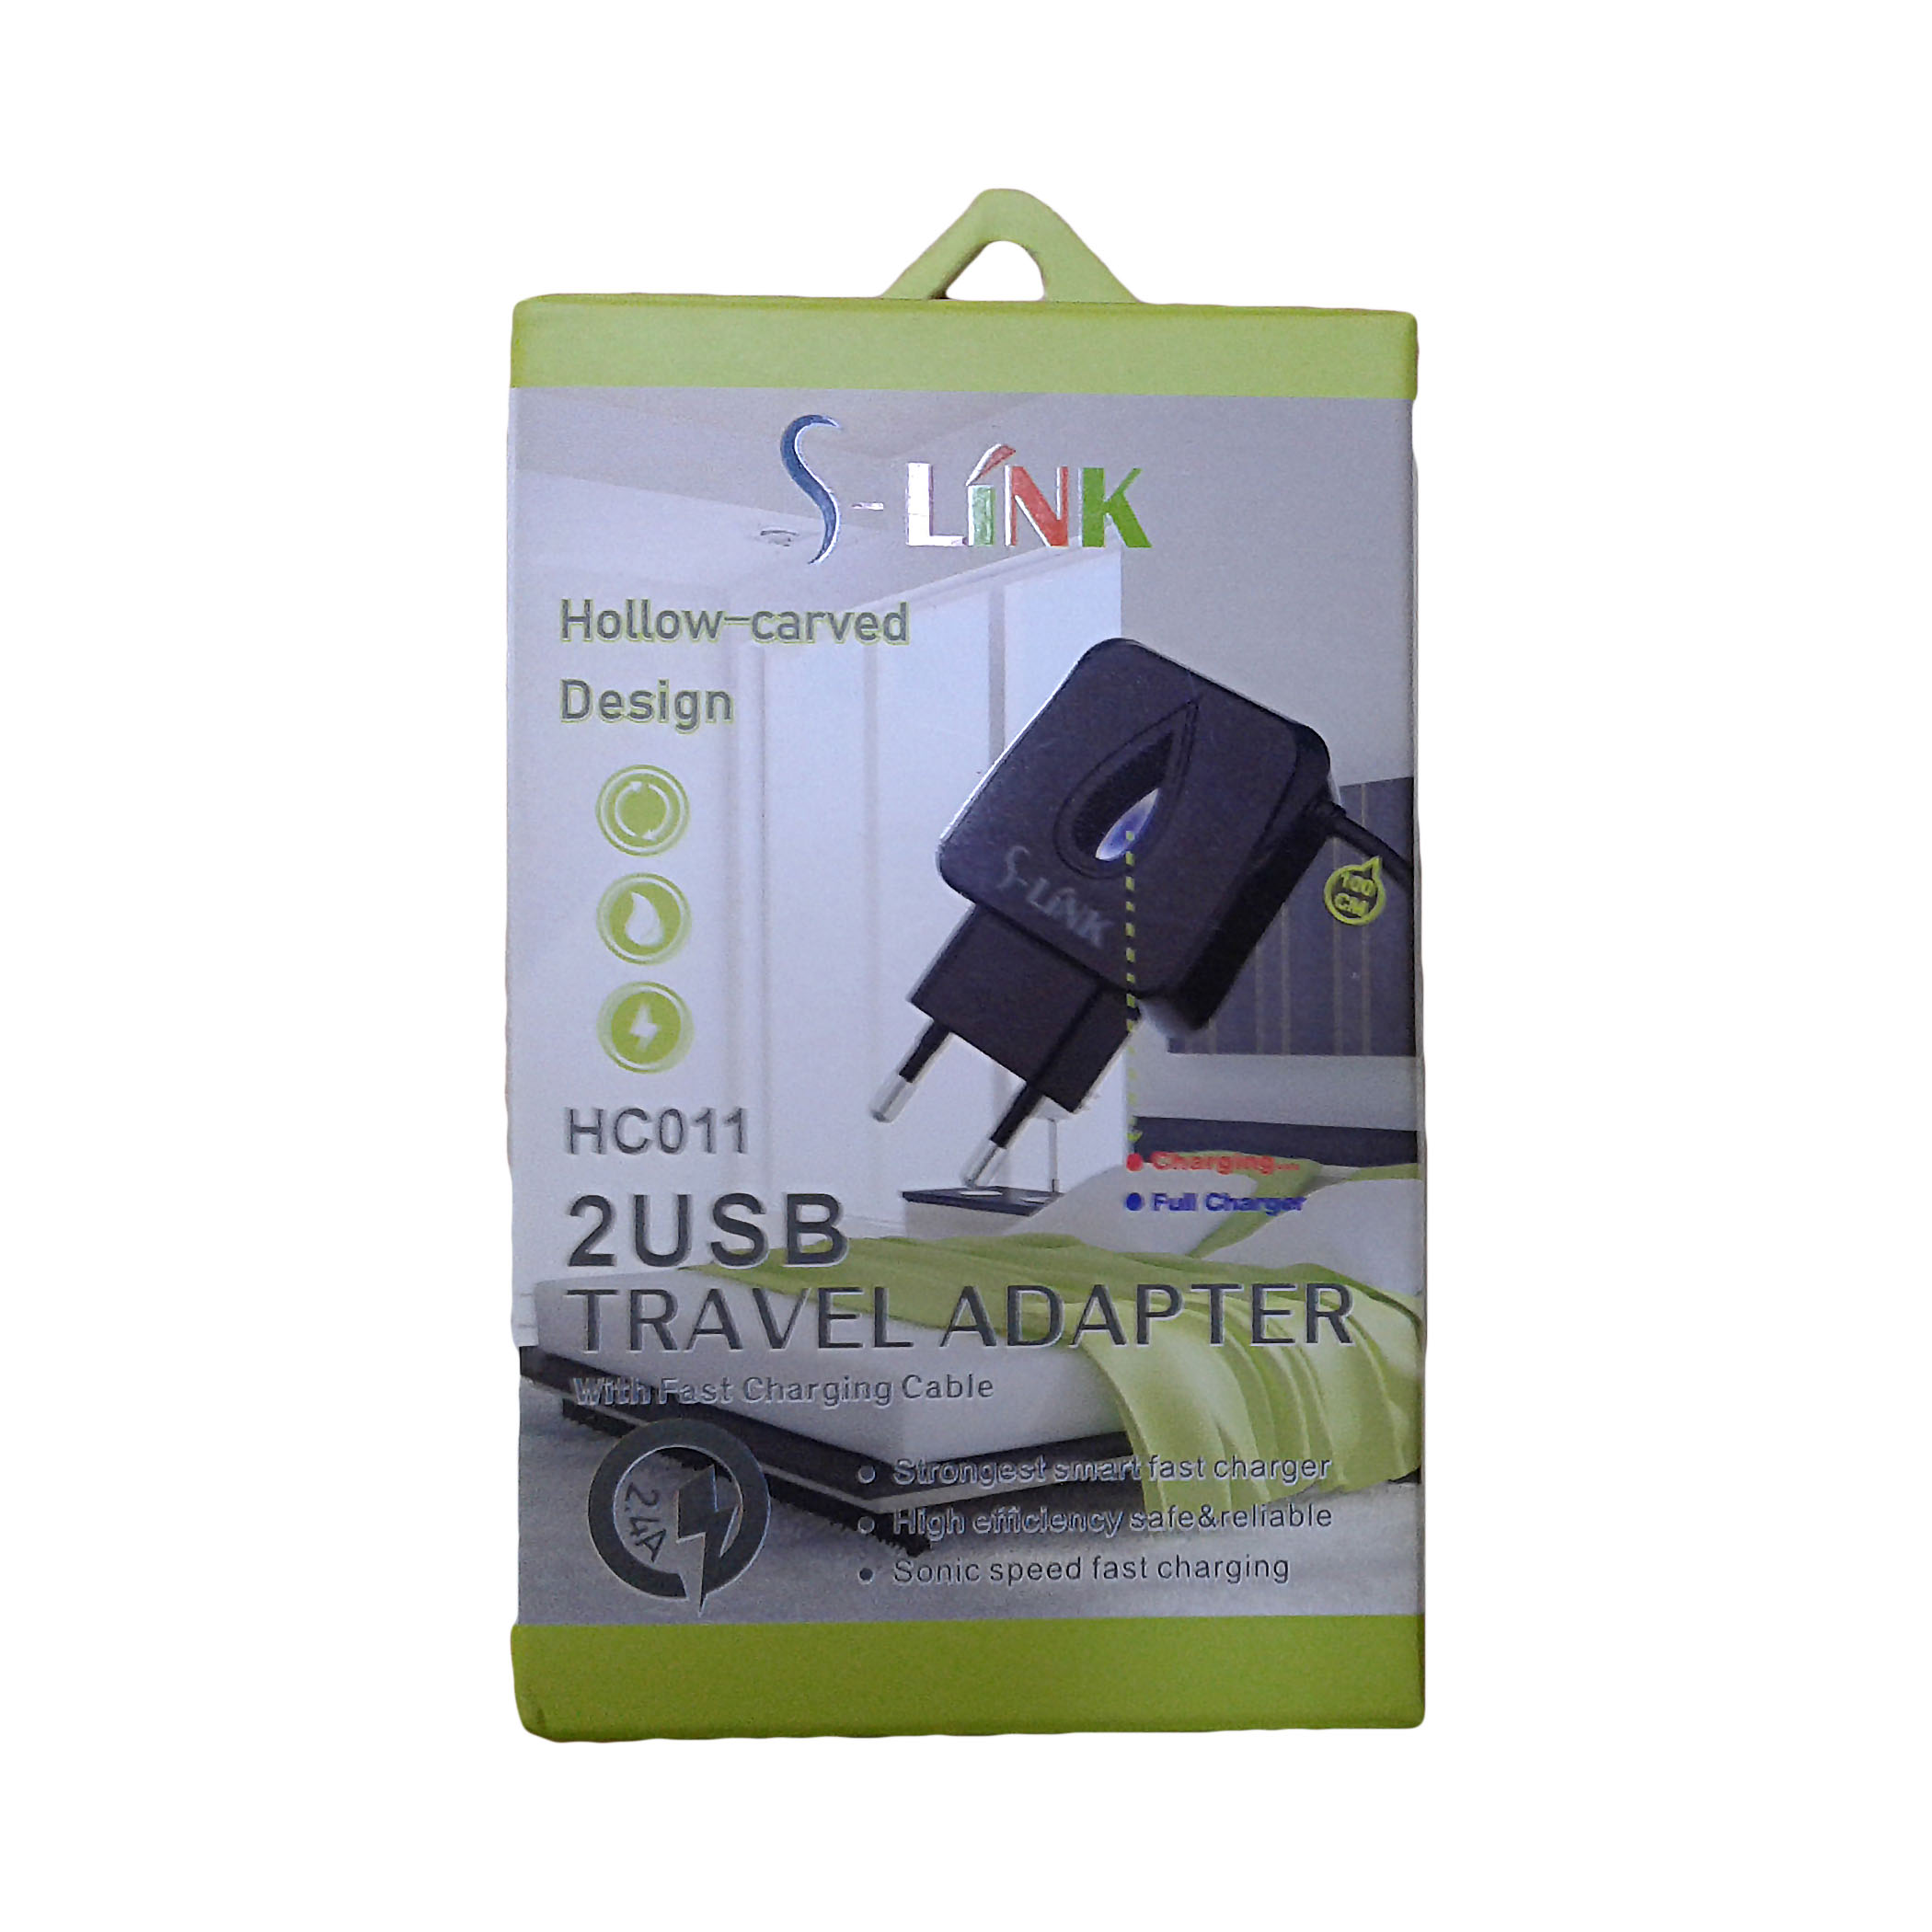 CHARGER DUAL USB FOR MOBILE&TAB ANDROID - S-LINK HC 014/HC 011/HC 012/HC 015 شاحن مخرجين 2.4 امبير مع كبل ,Smartphones & Tab Chargers